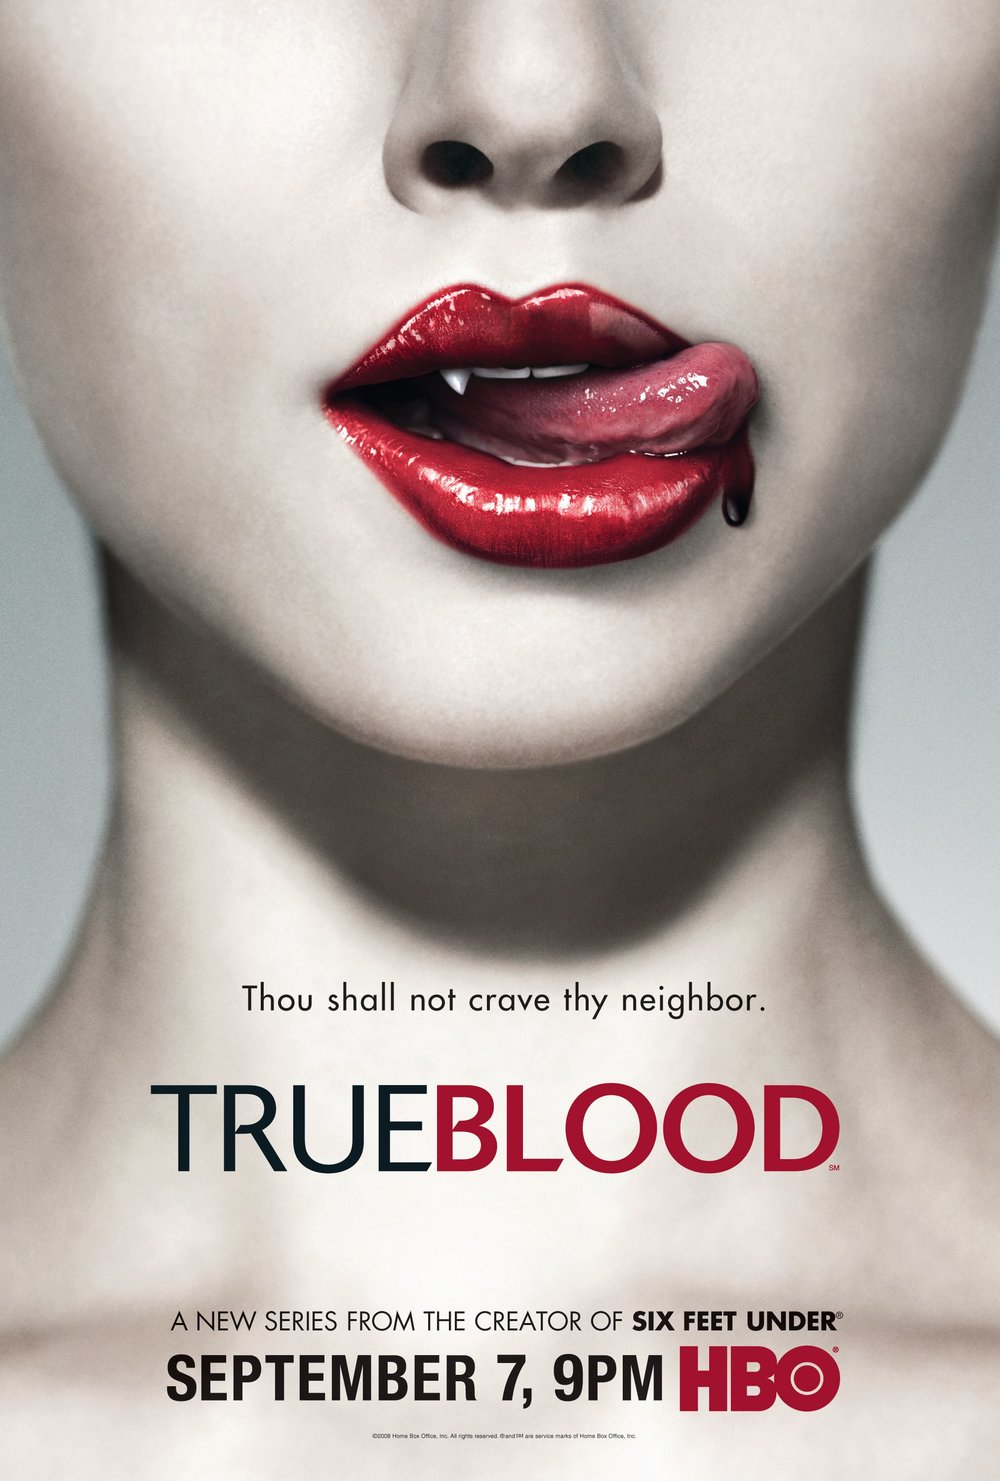 true blood.jpeg